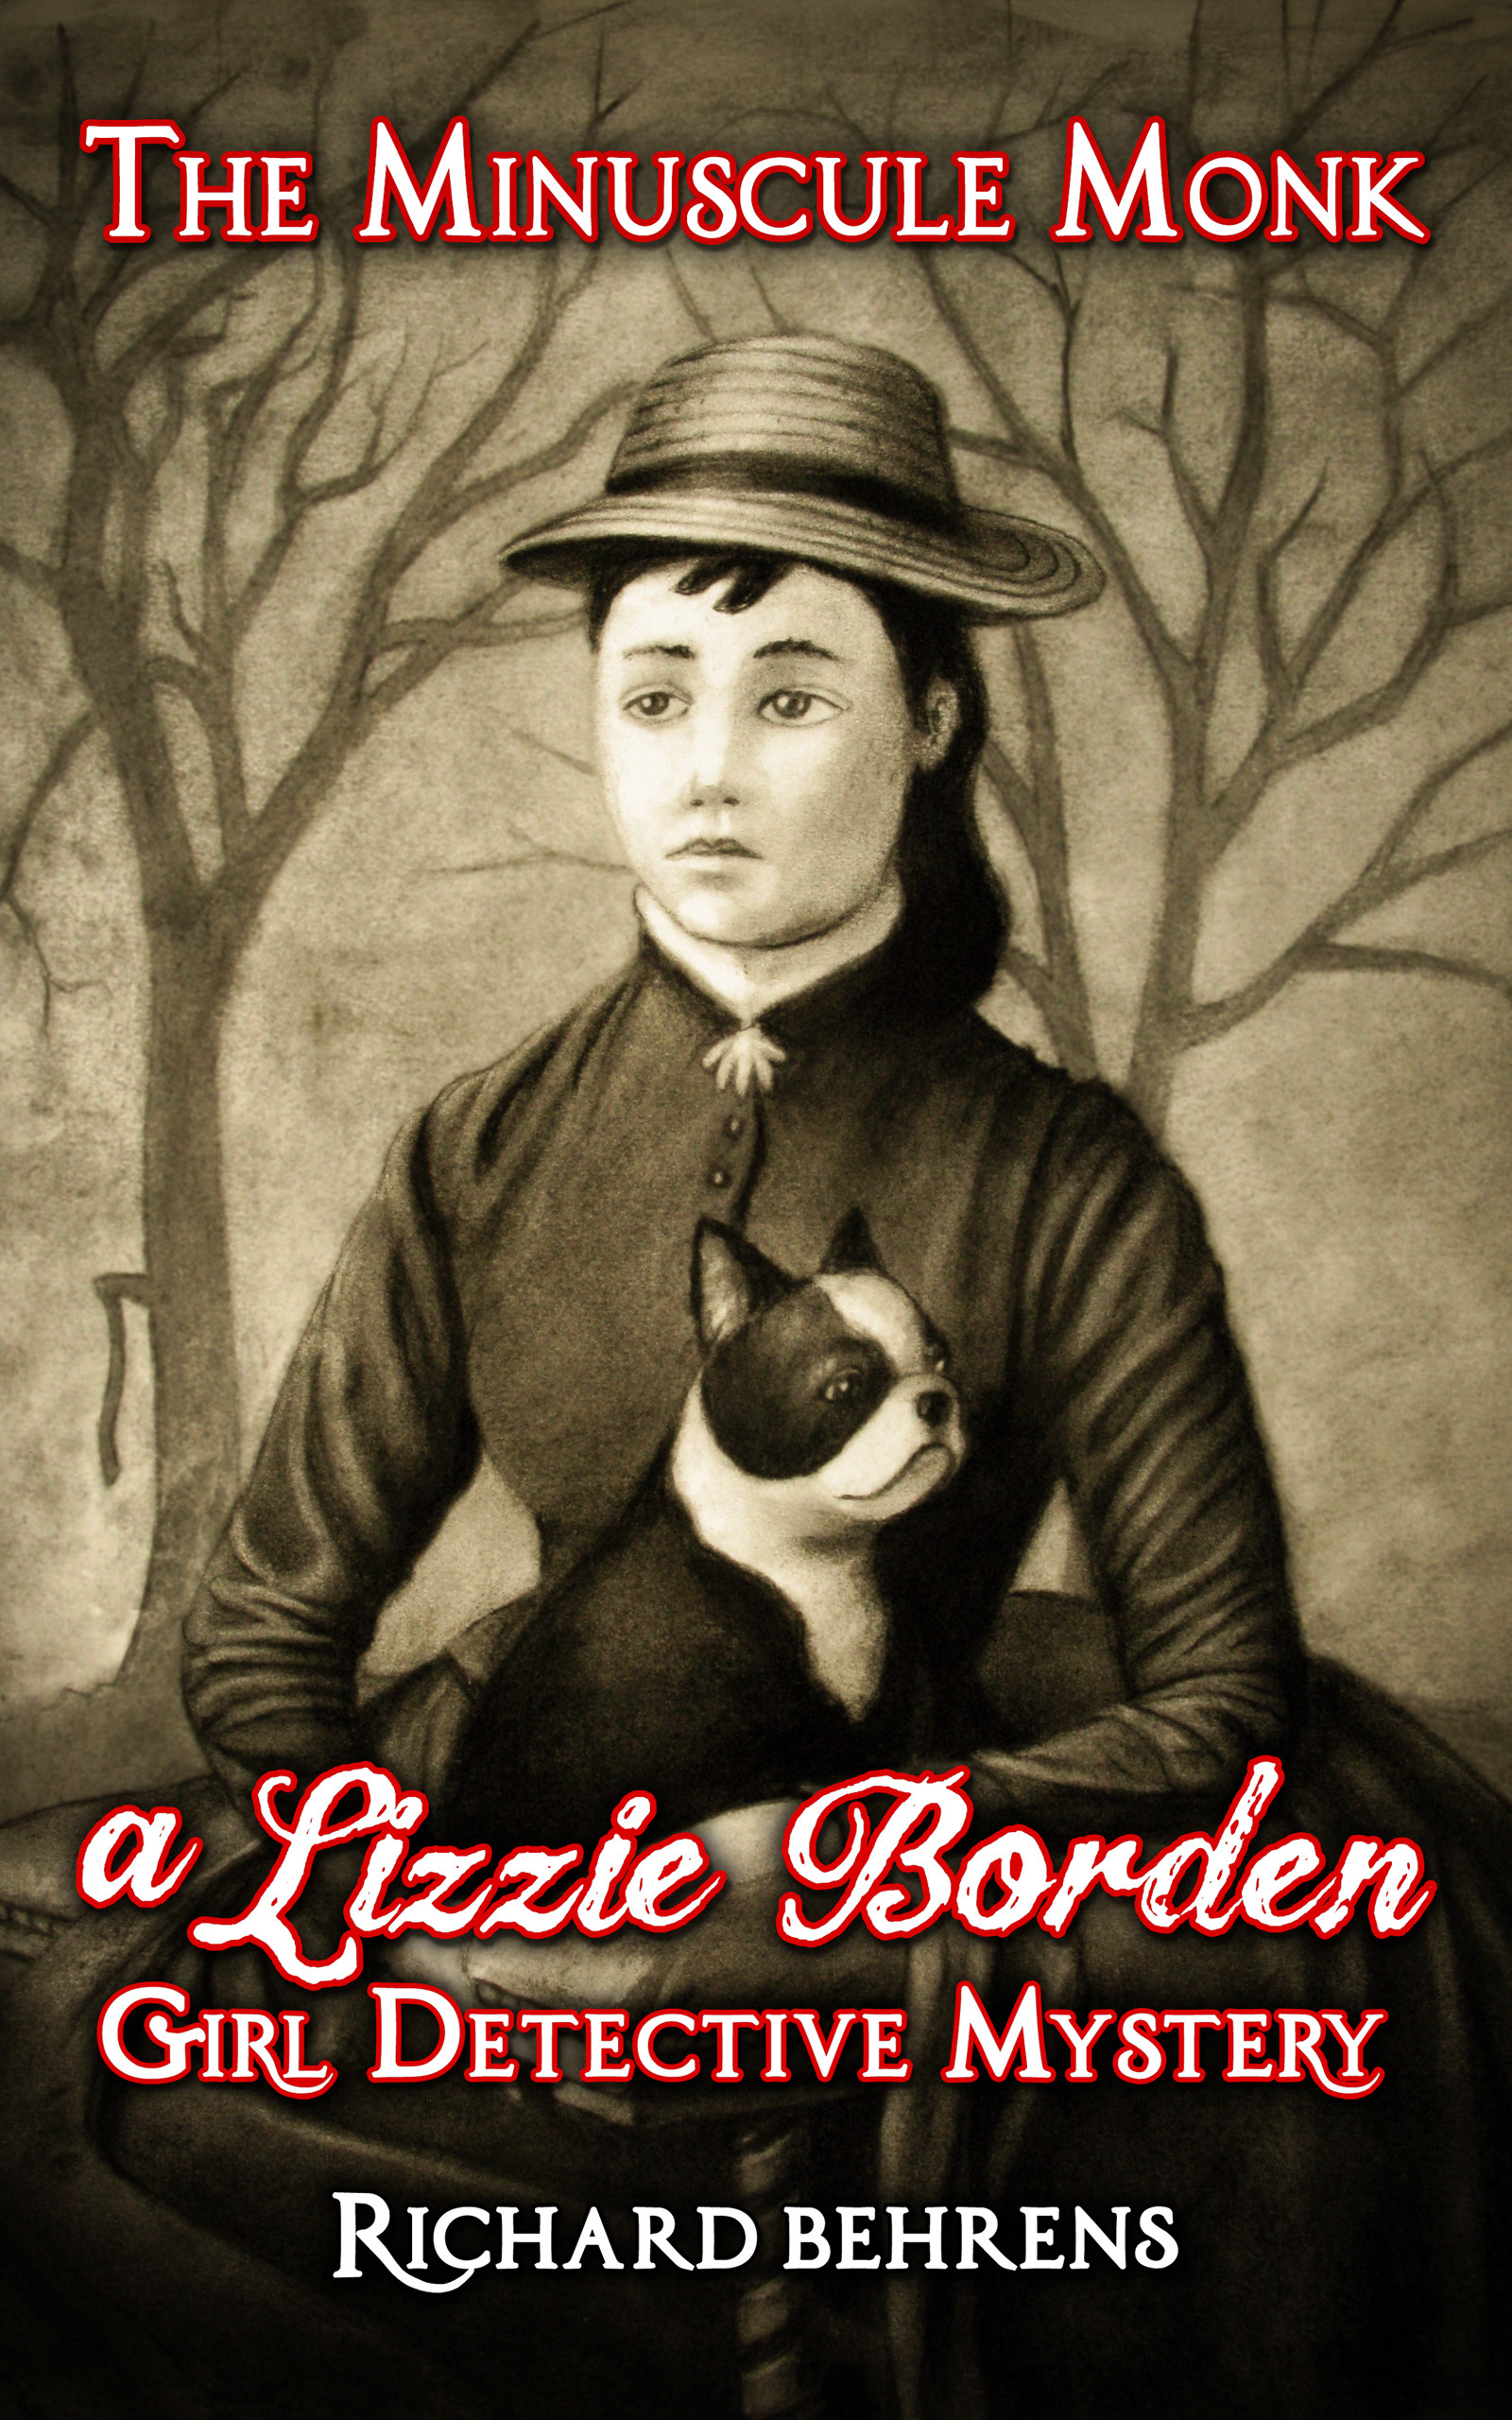 The Minuscule Monk: A Lizzie Borden, Girl Detective Mystery Richard Behrens